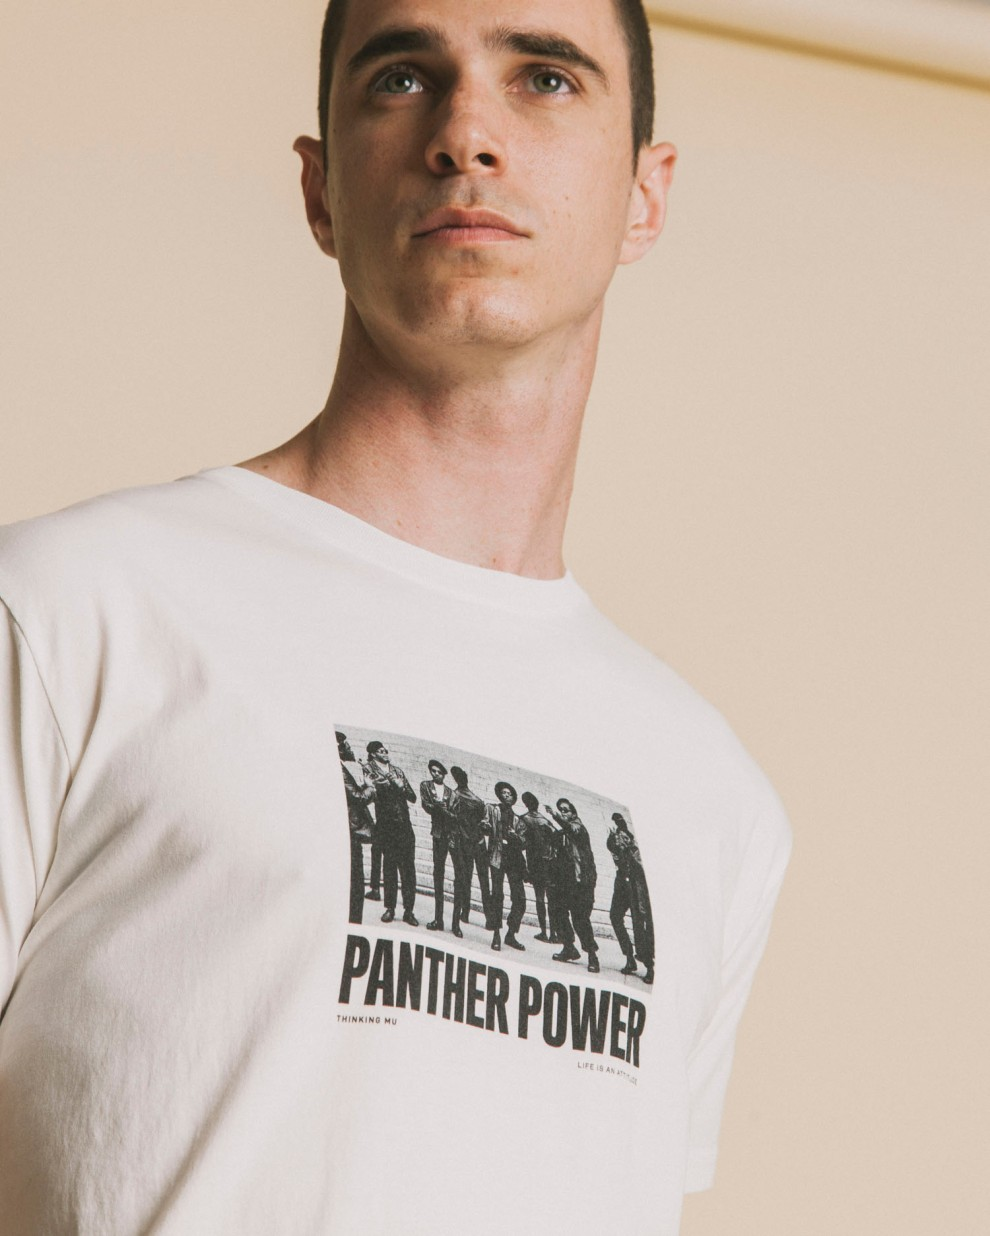 Panther power t-shirt